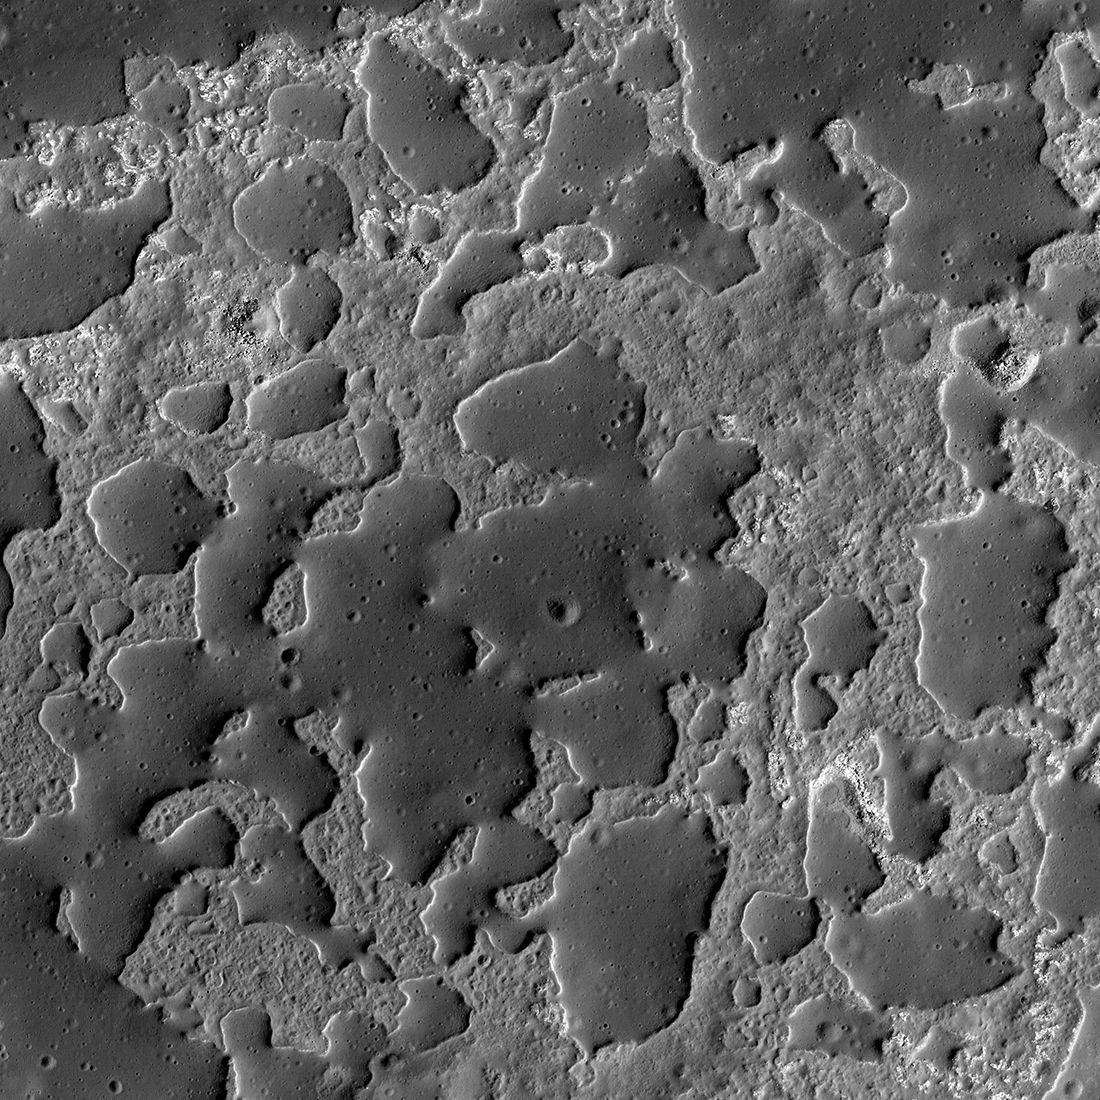 Zooming in on the strange structures in Ina, the smooth regions are cratered and elevated about a rougher, lower terrain. Credit: NASA/GSFC/Arizona State University